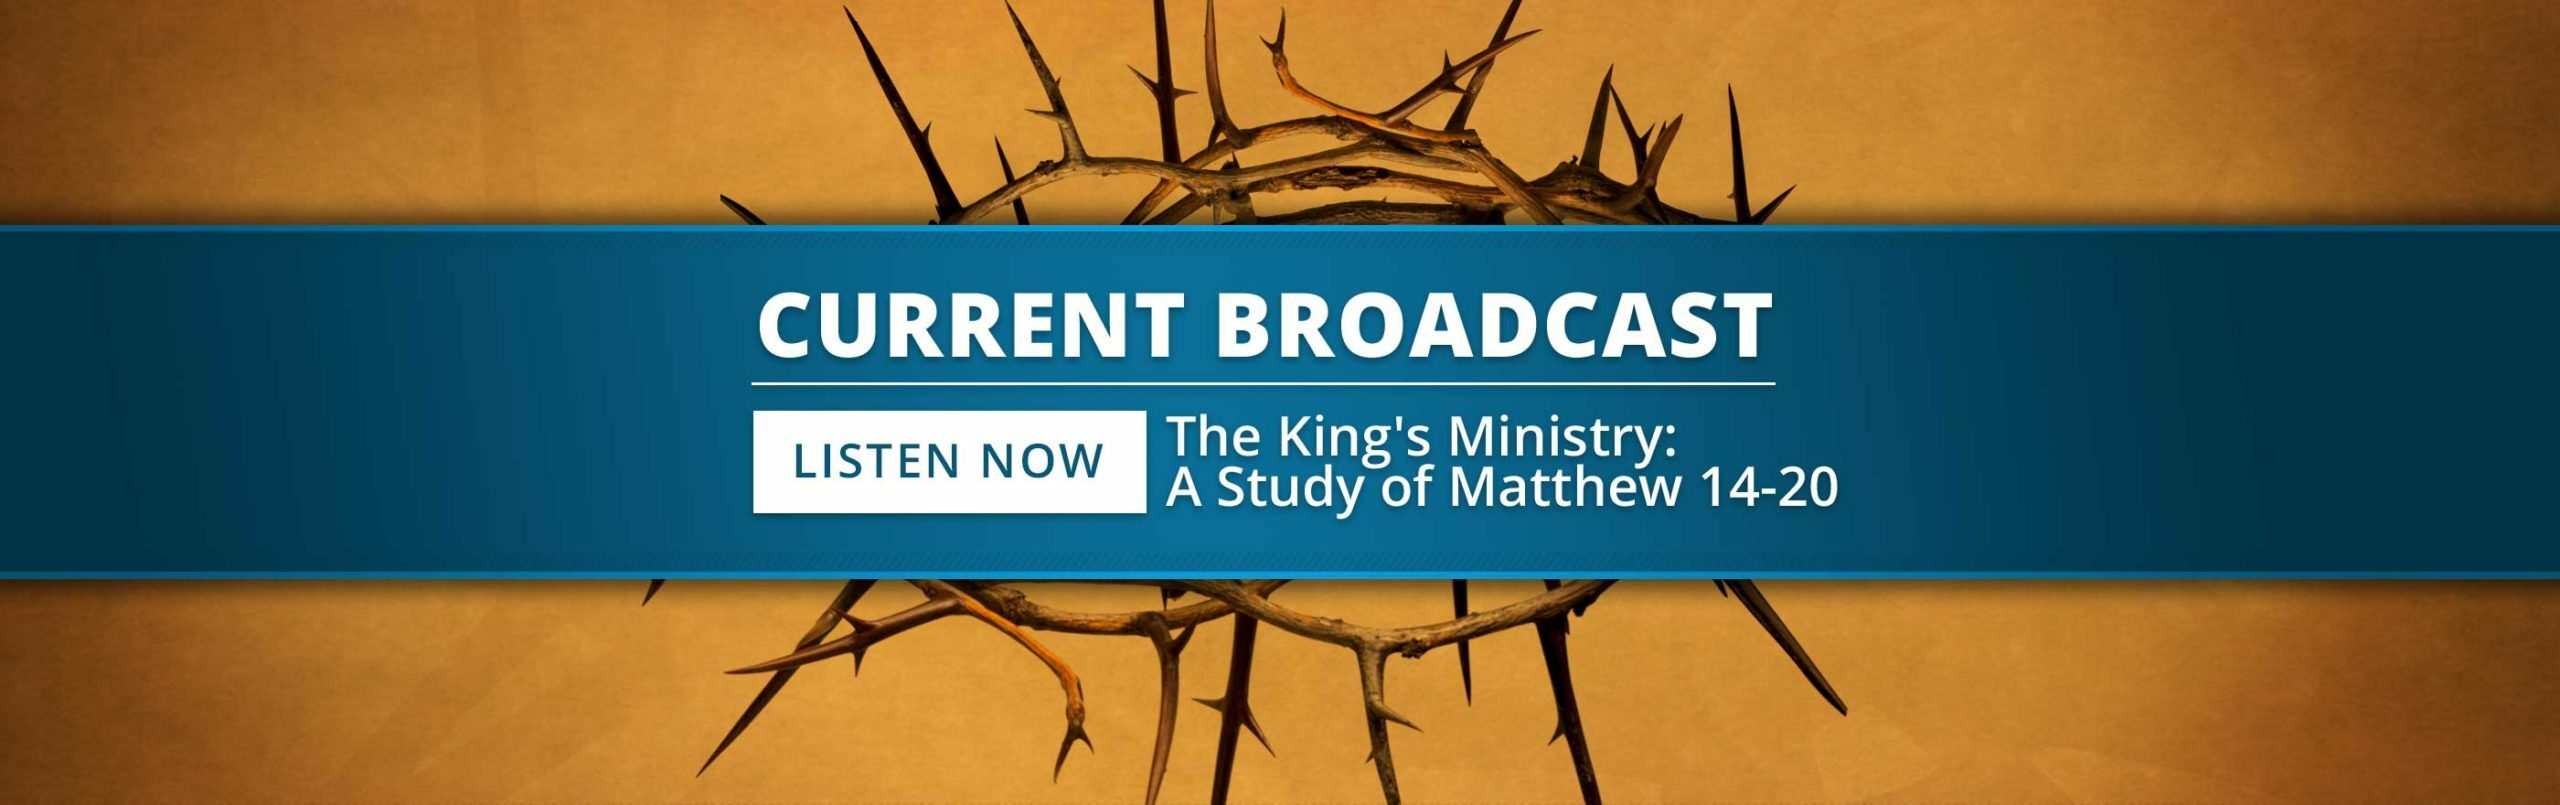 Current Broadcast: The King's Ministry—A Study of Matthew 14-20